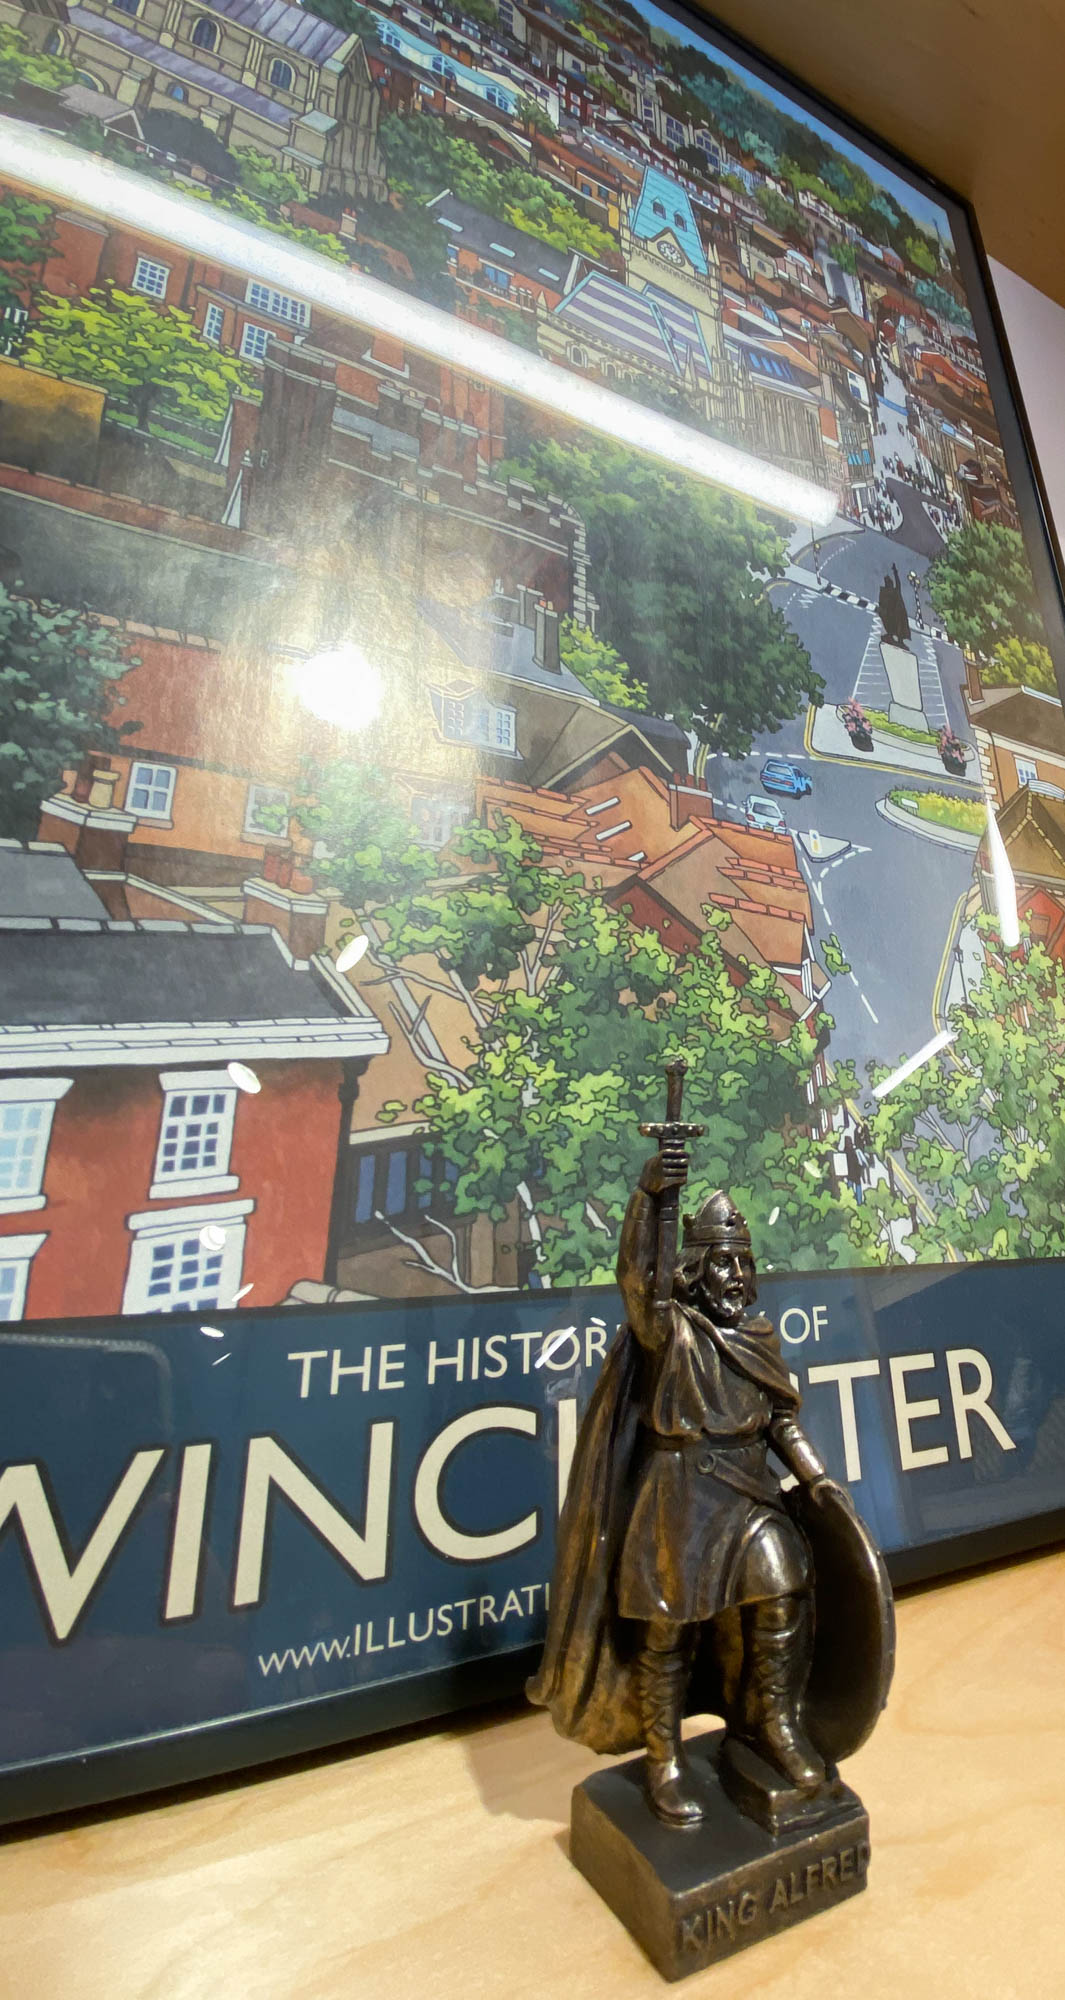 City Museum Display with King Alfred Statuette